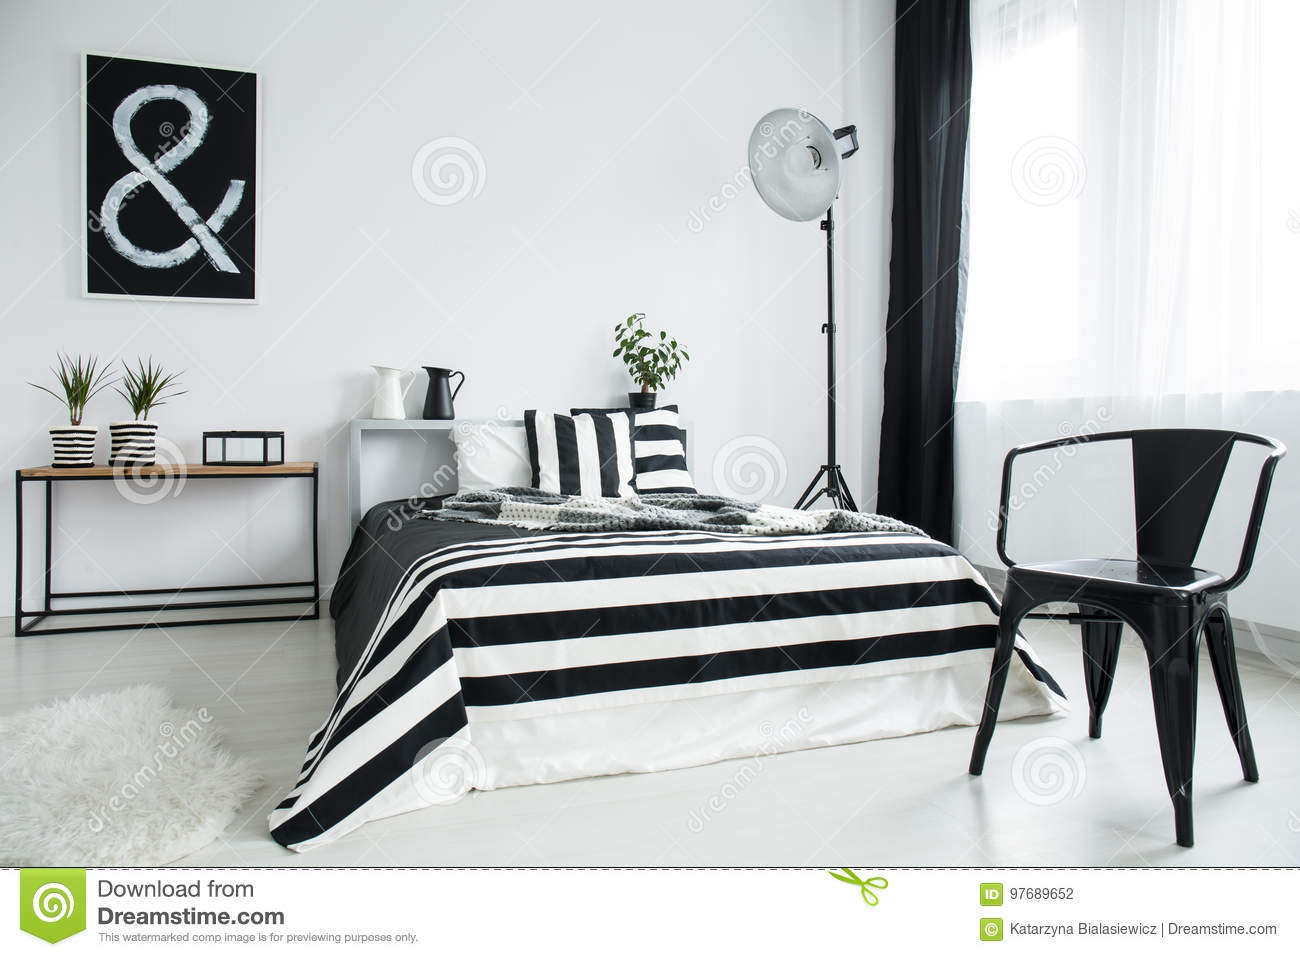 Designed black chair stock photo. Image of copy, king - 97689652